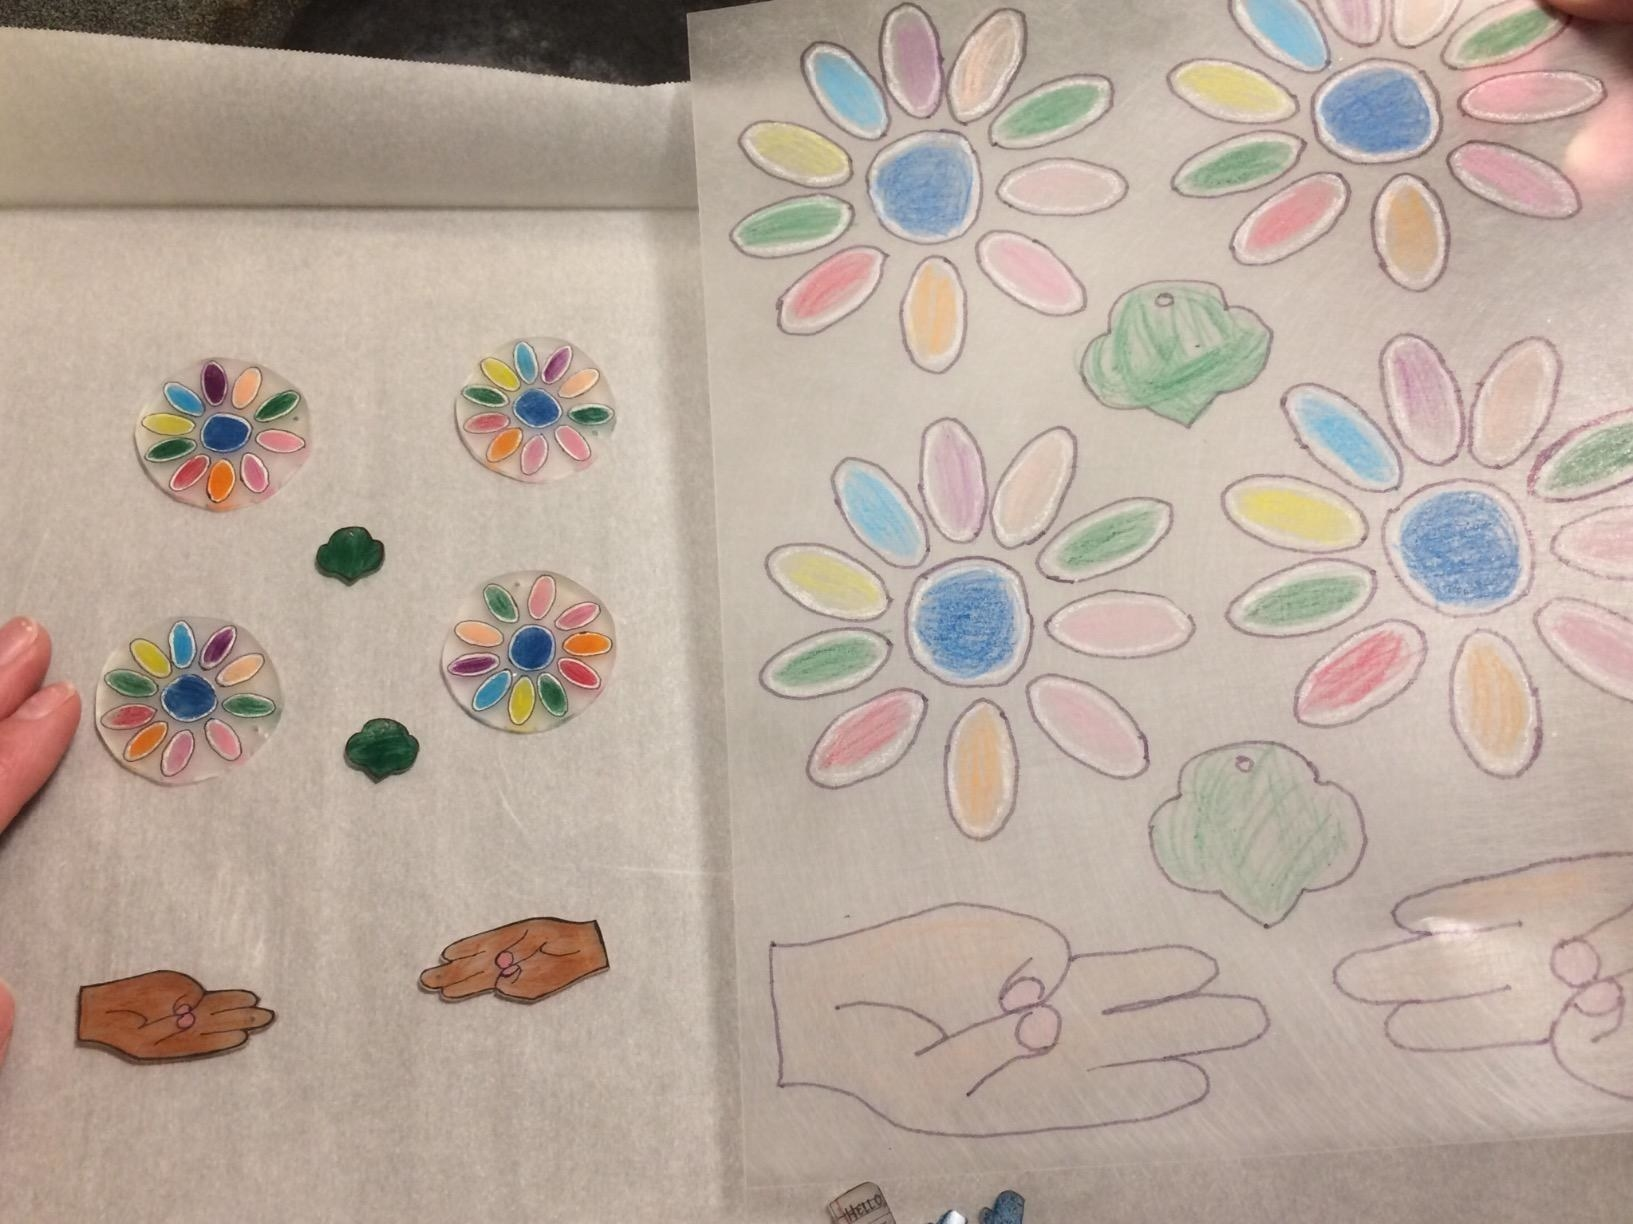 A before and after shot of colorful Shrinky Dinks.